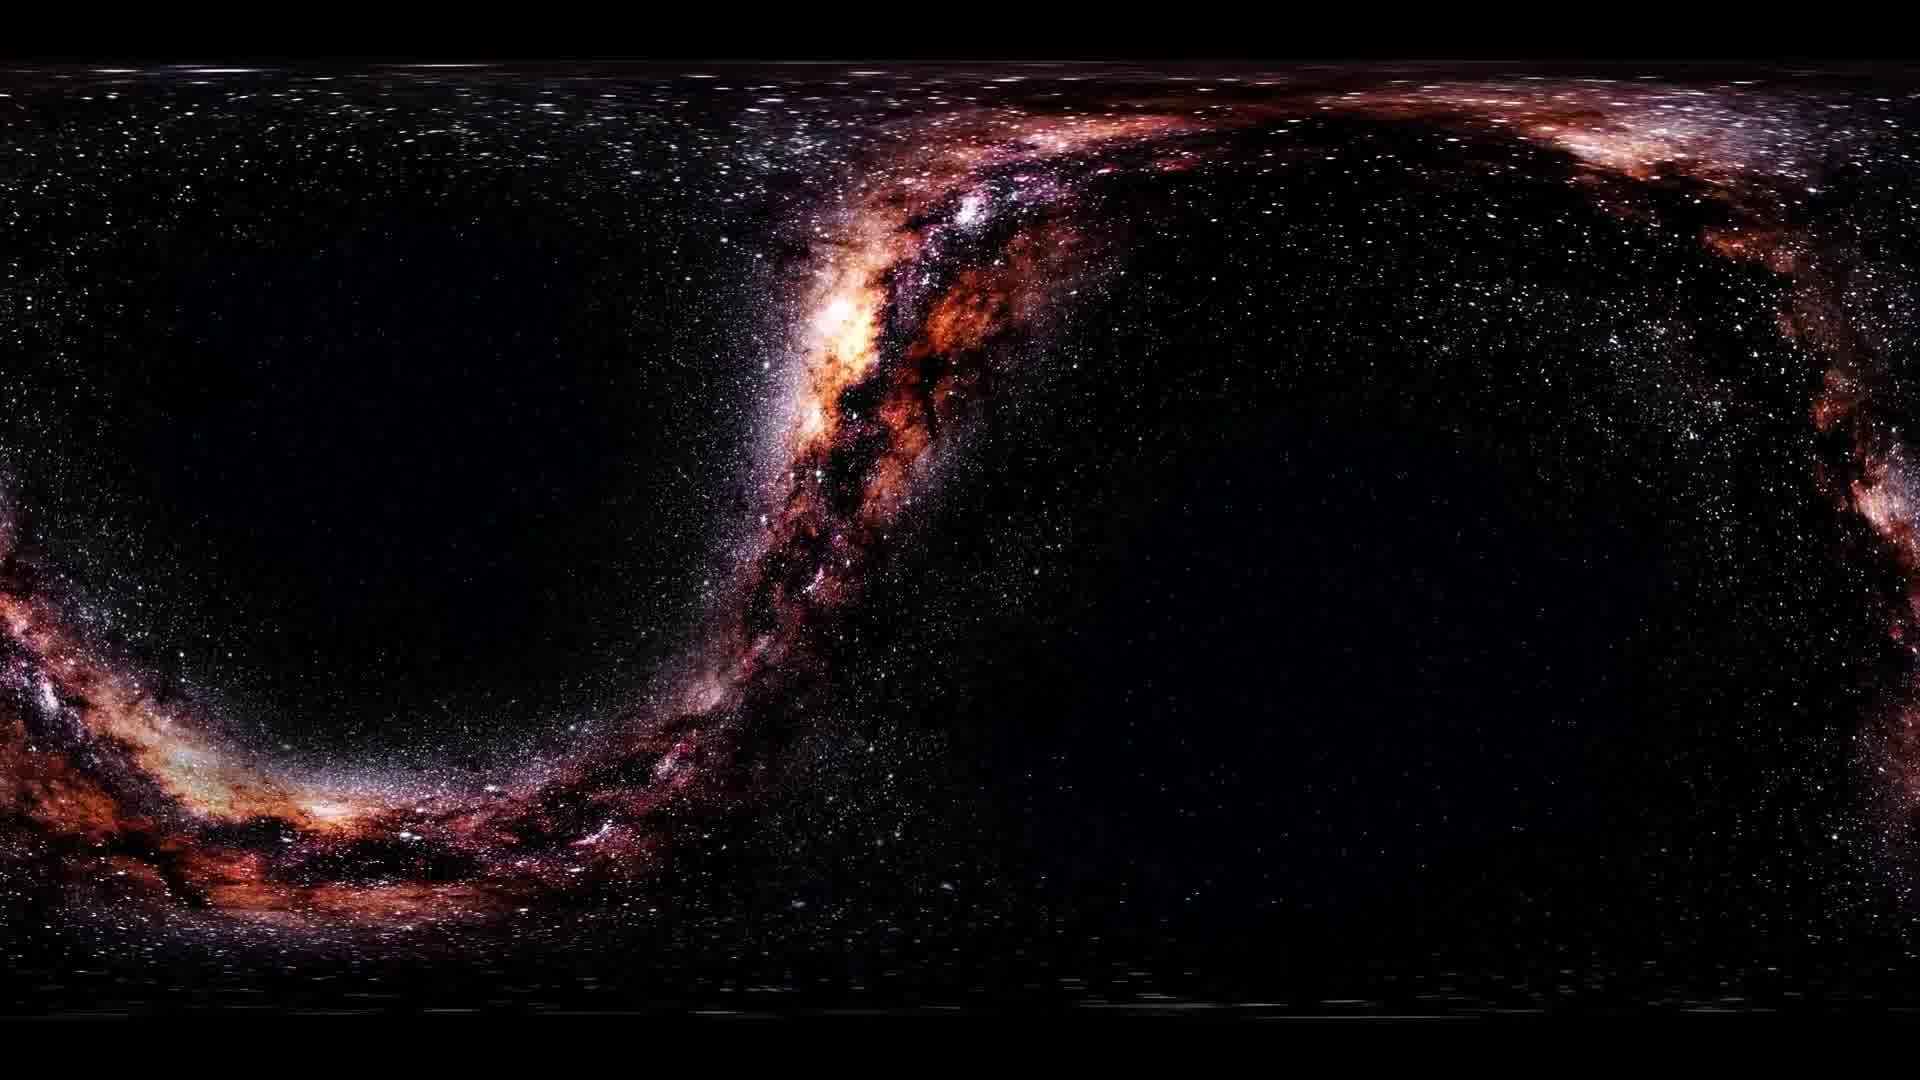 Milky Way stars in space virtual reality 360 degree video. Elements of this image furnished by NASA